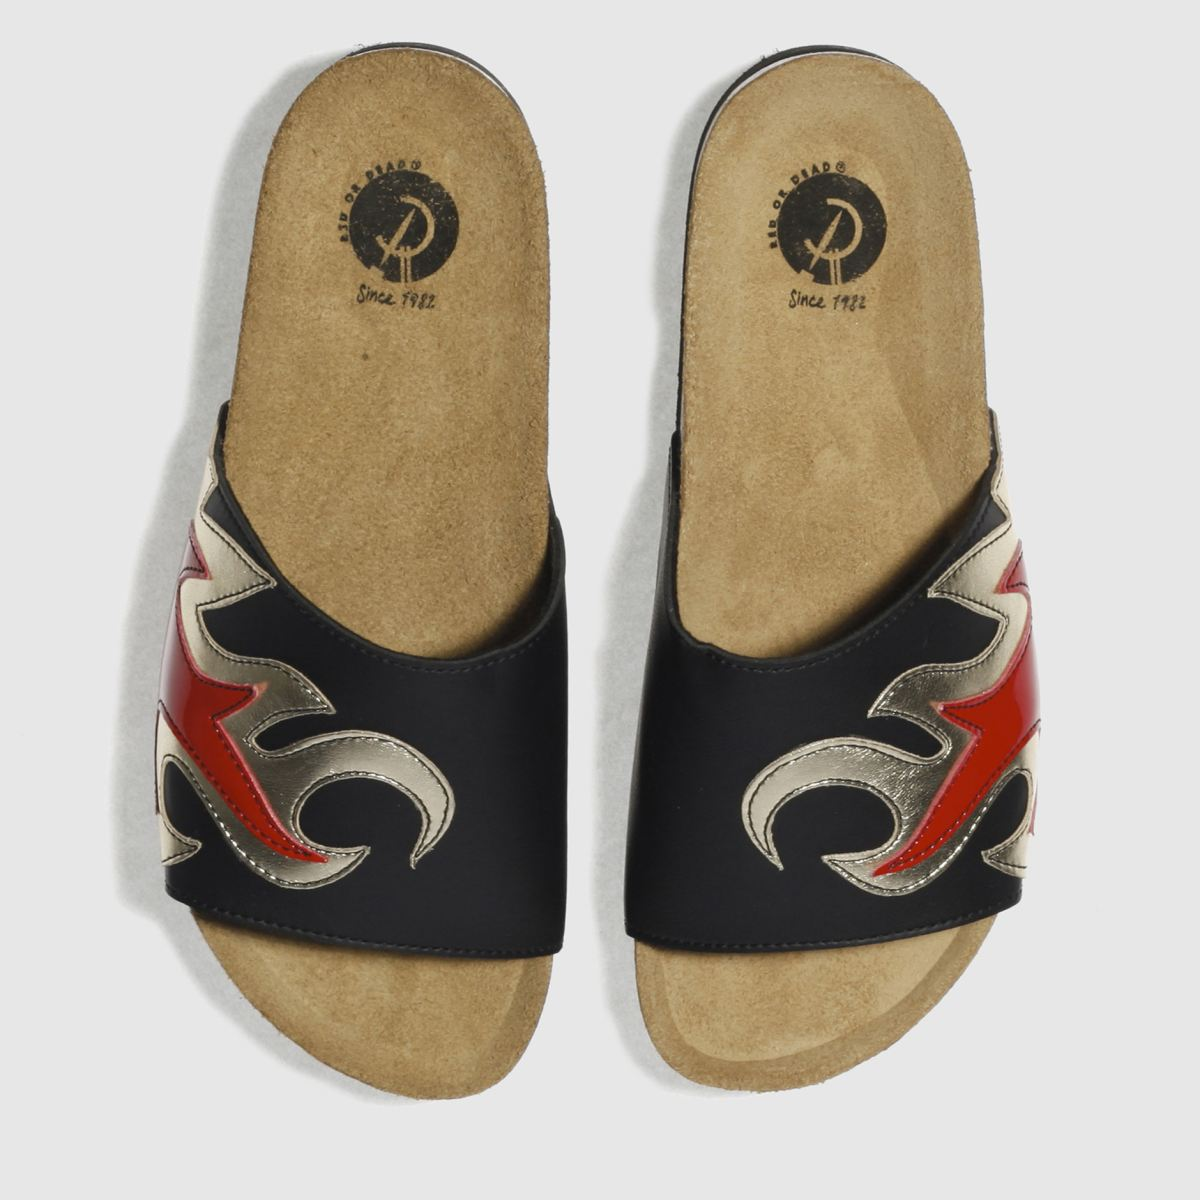 Red Or Dead Black & Red Flambe Sandals